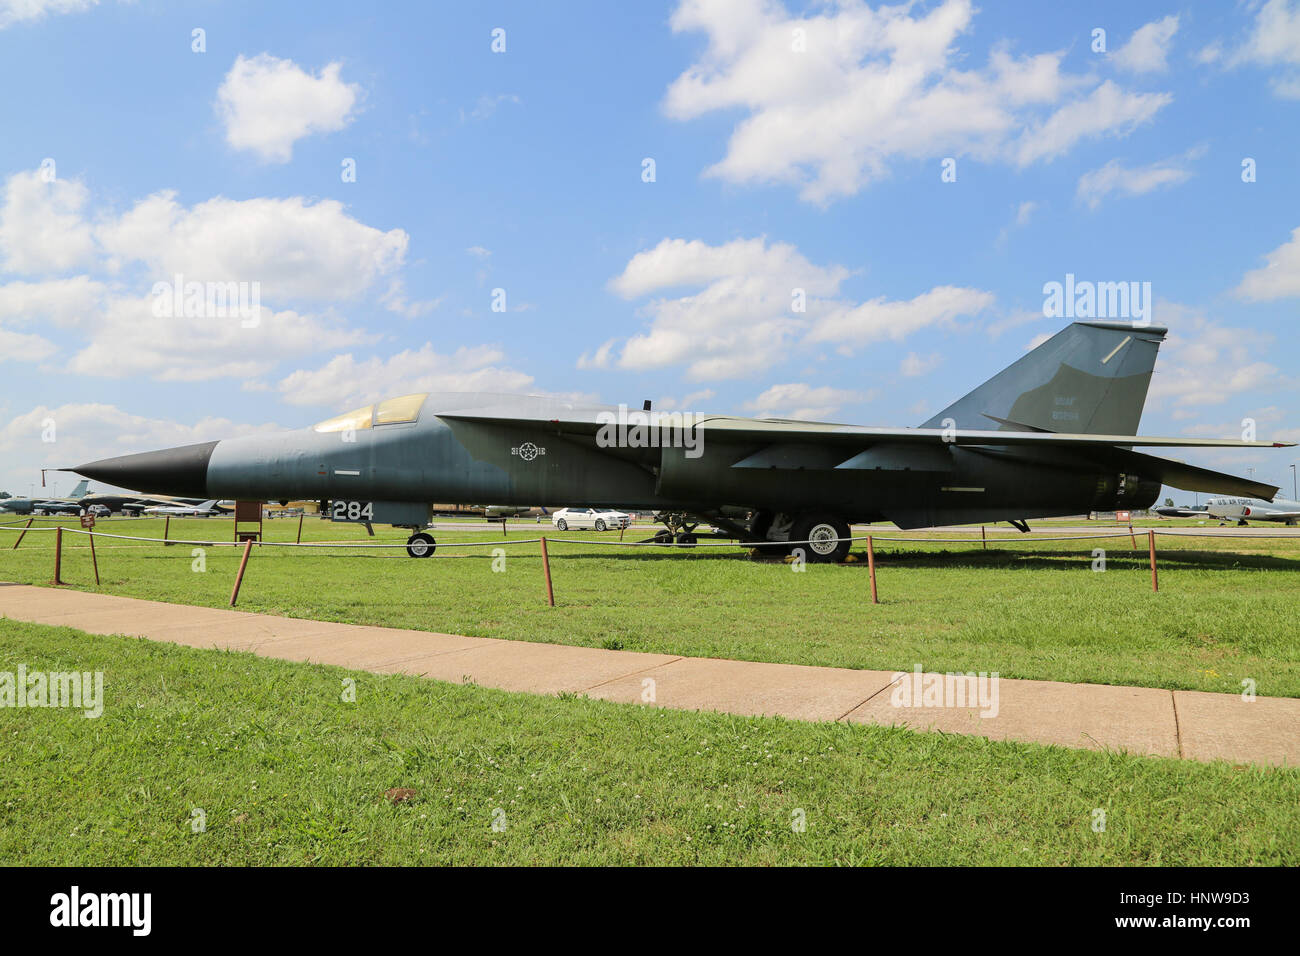 A General Dynamics F-111A on display at The Barksdale Global Power Museum, on Barksdale AFB, Louisiana - Stock Image